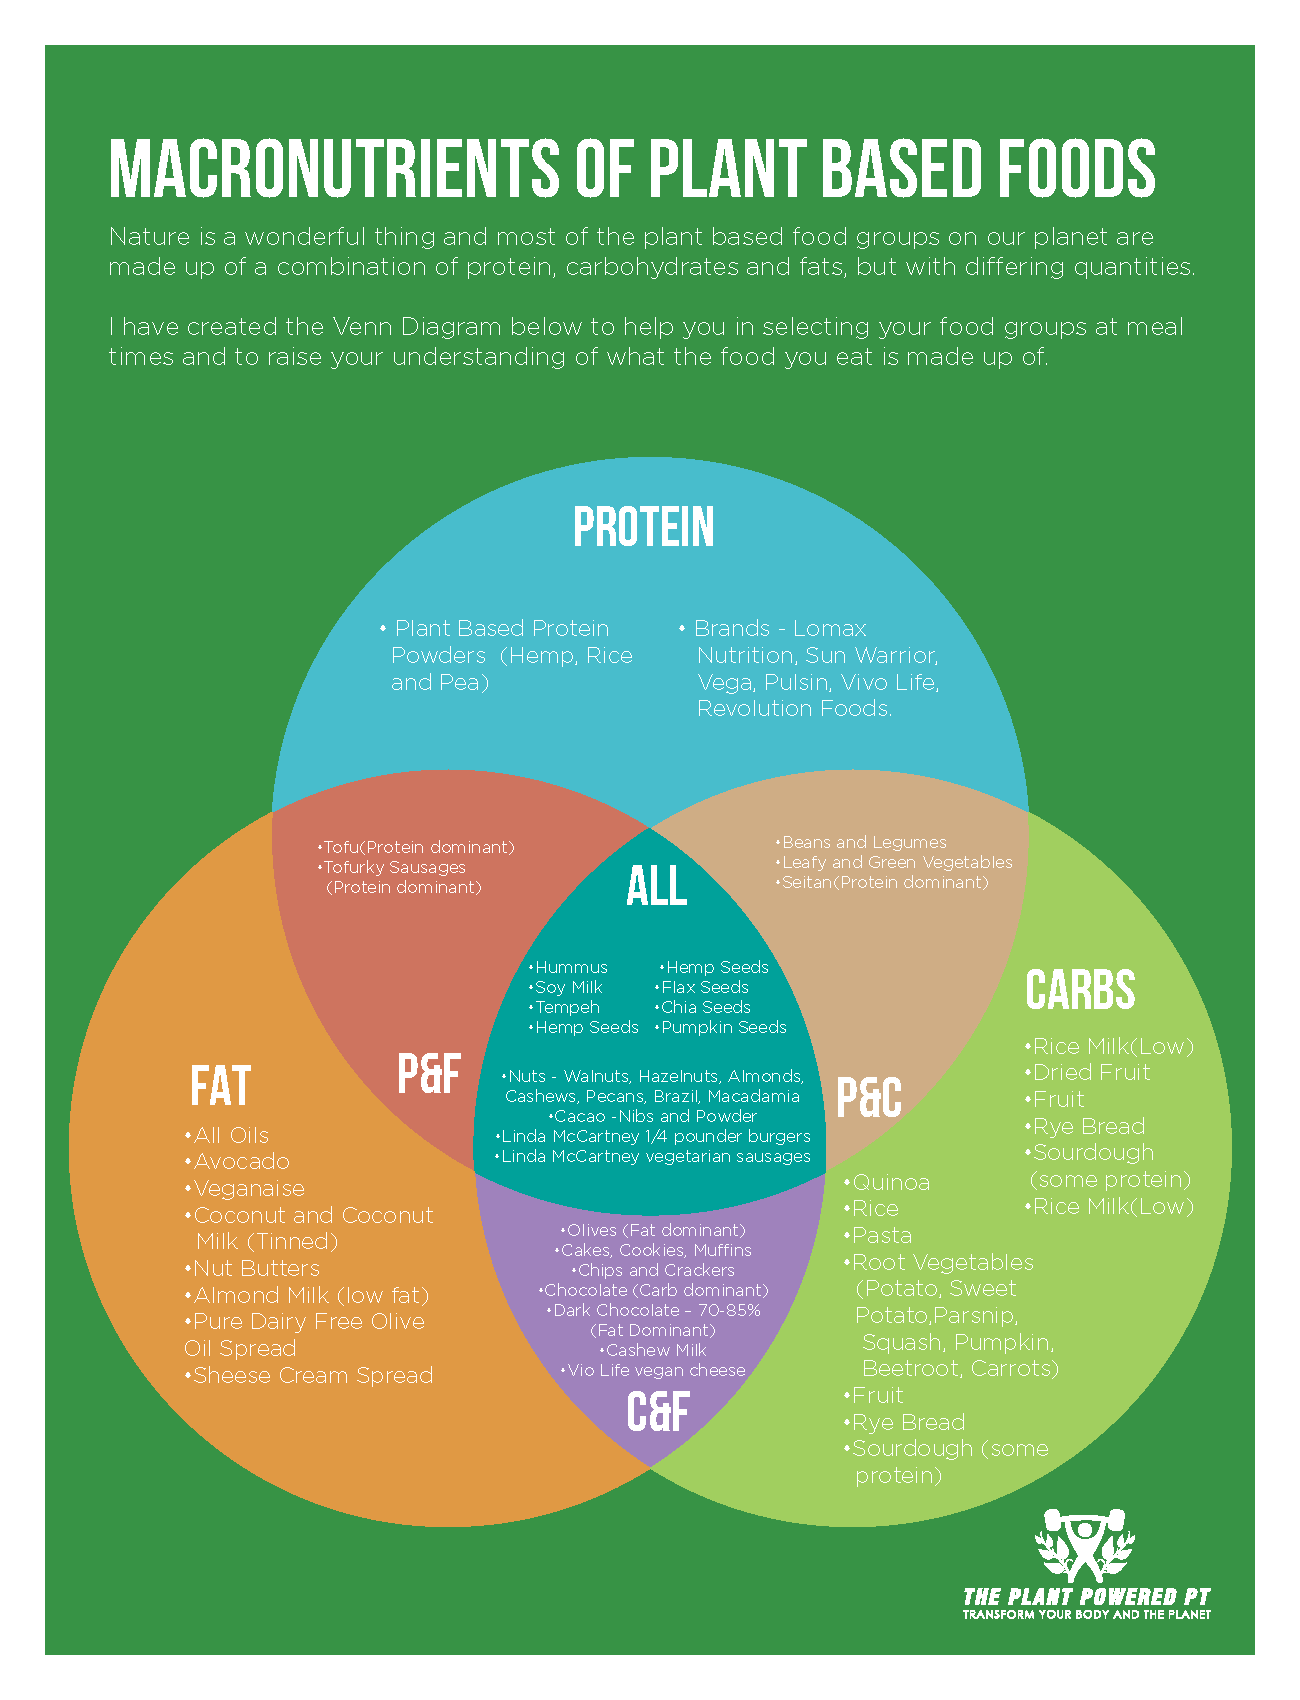 venn diagram problems with answers how to set a formal table setting go vegan in 20 easy follow steps veganuary